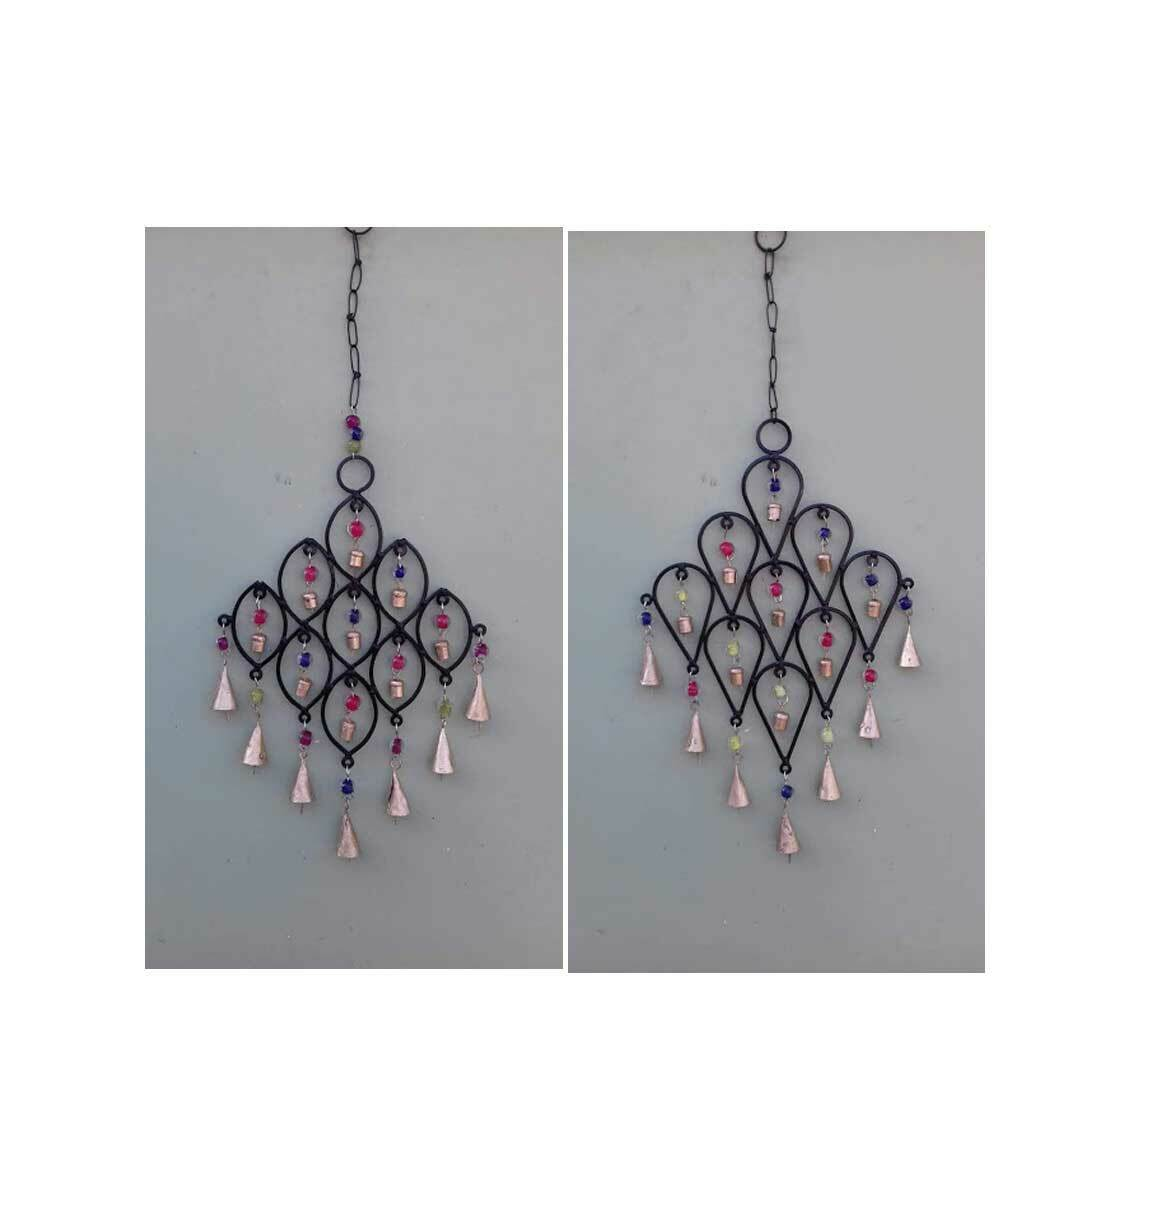 Recycled Iron Bells Teardrop Wind Chime with Beads & Bells Suncatcher Indian 2Pc